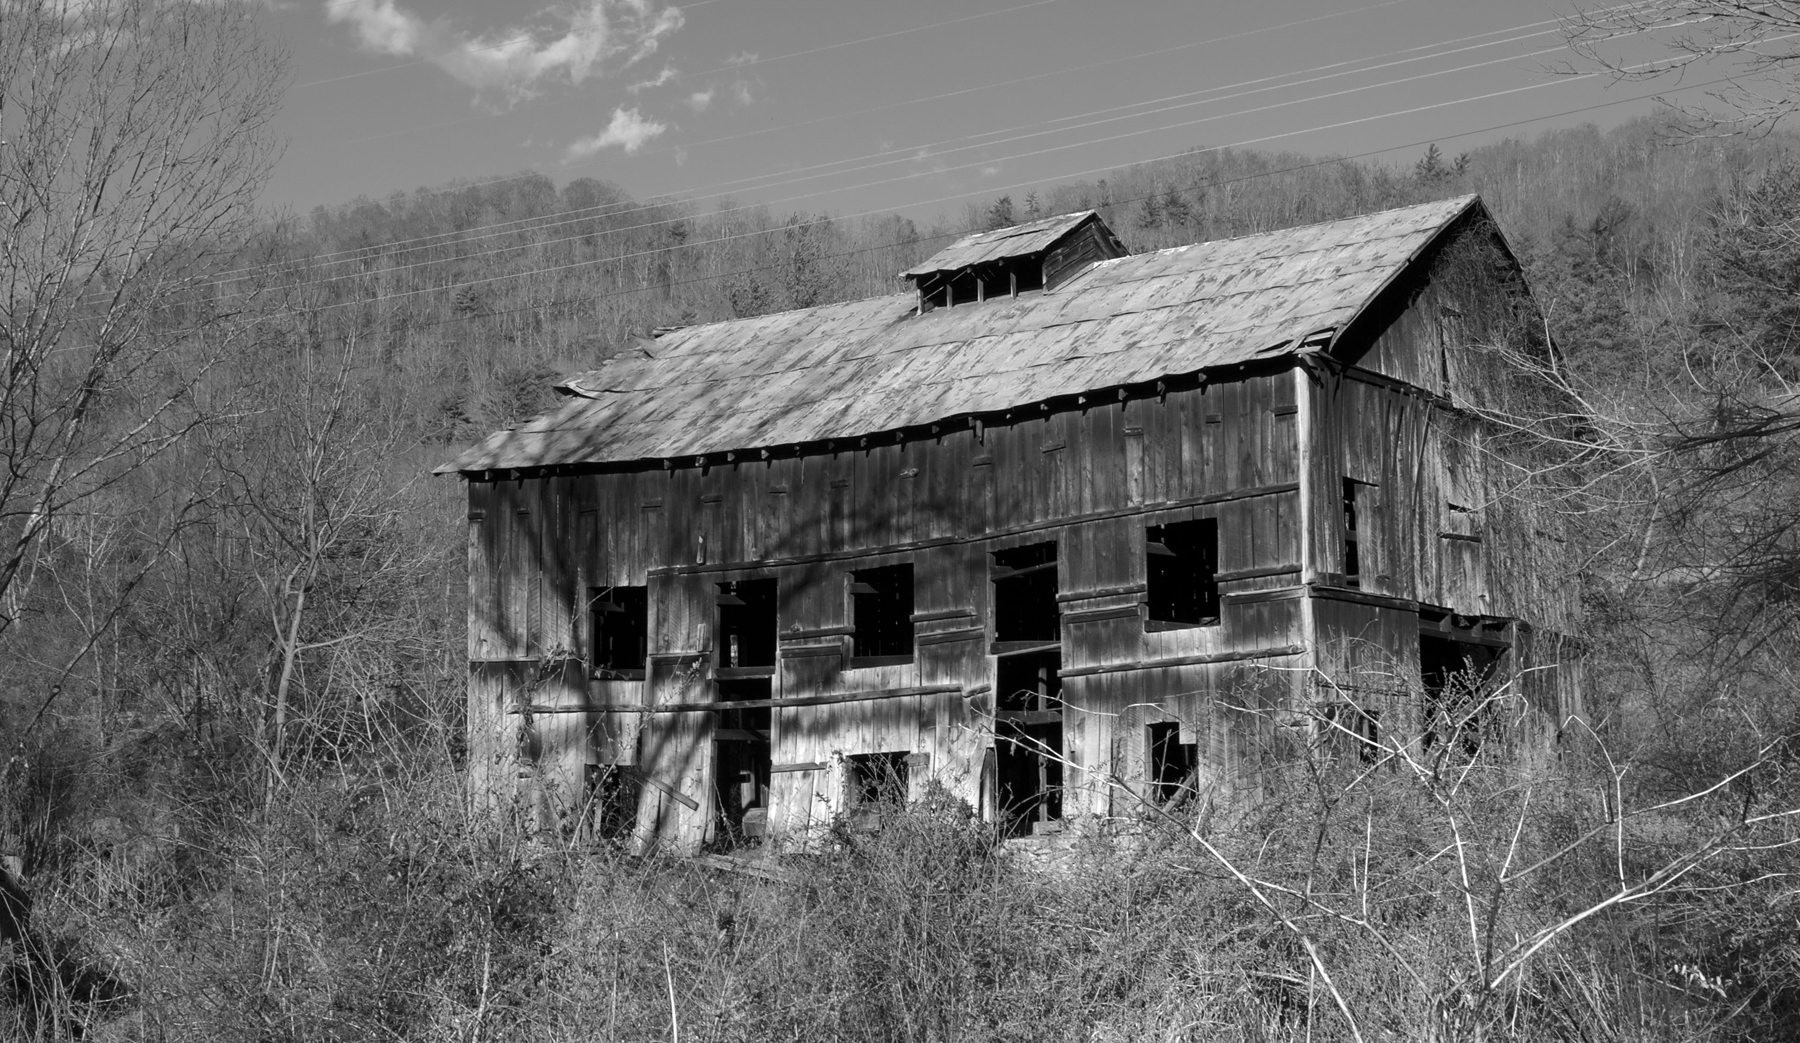 Carol-Lawrence-Old-barn-1.jpg